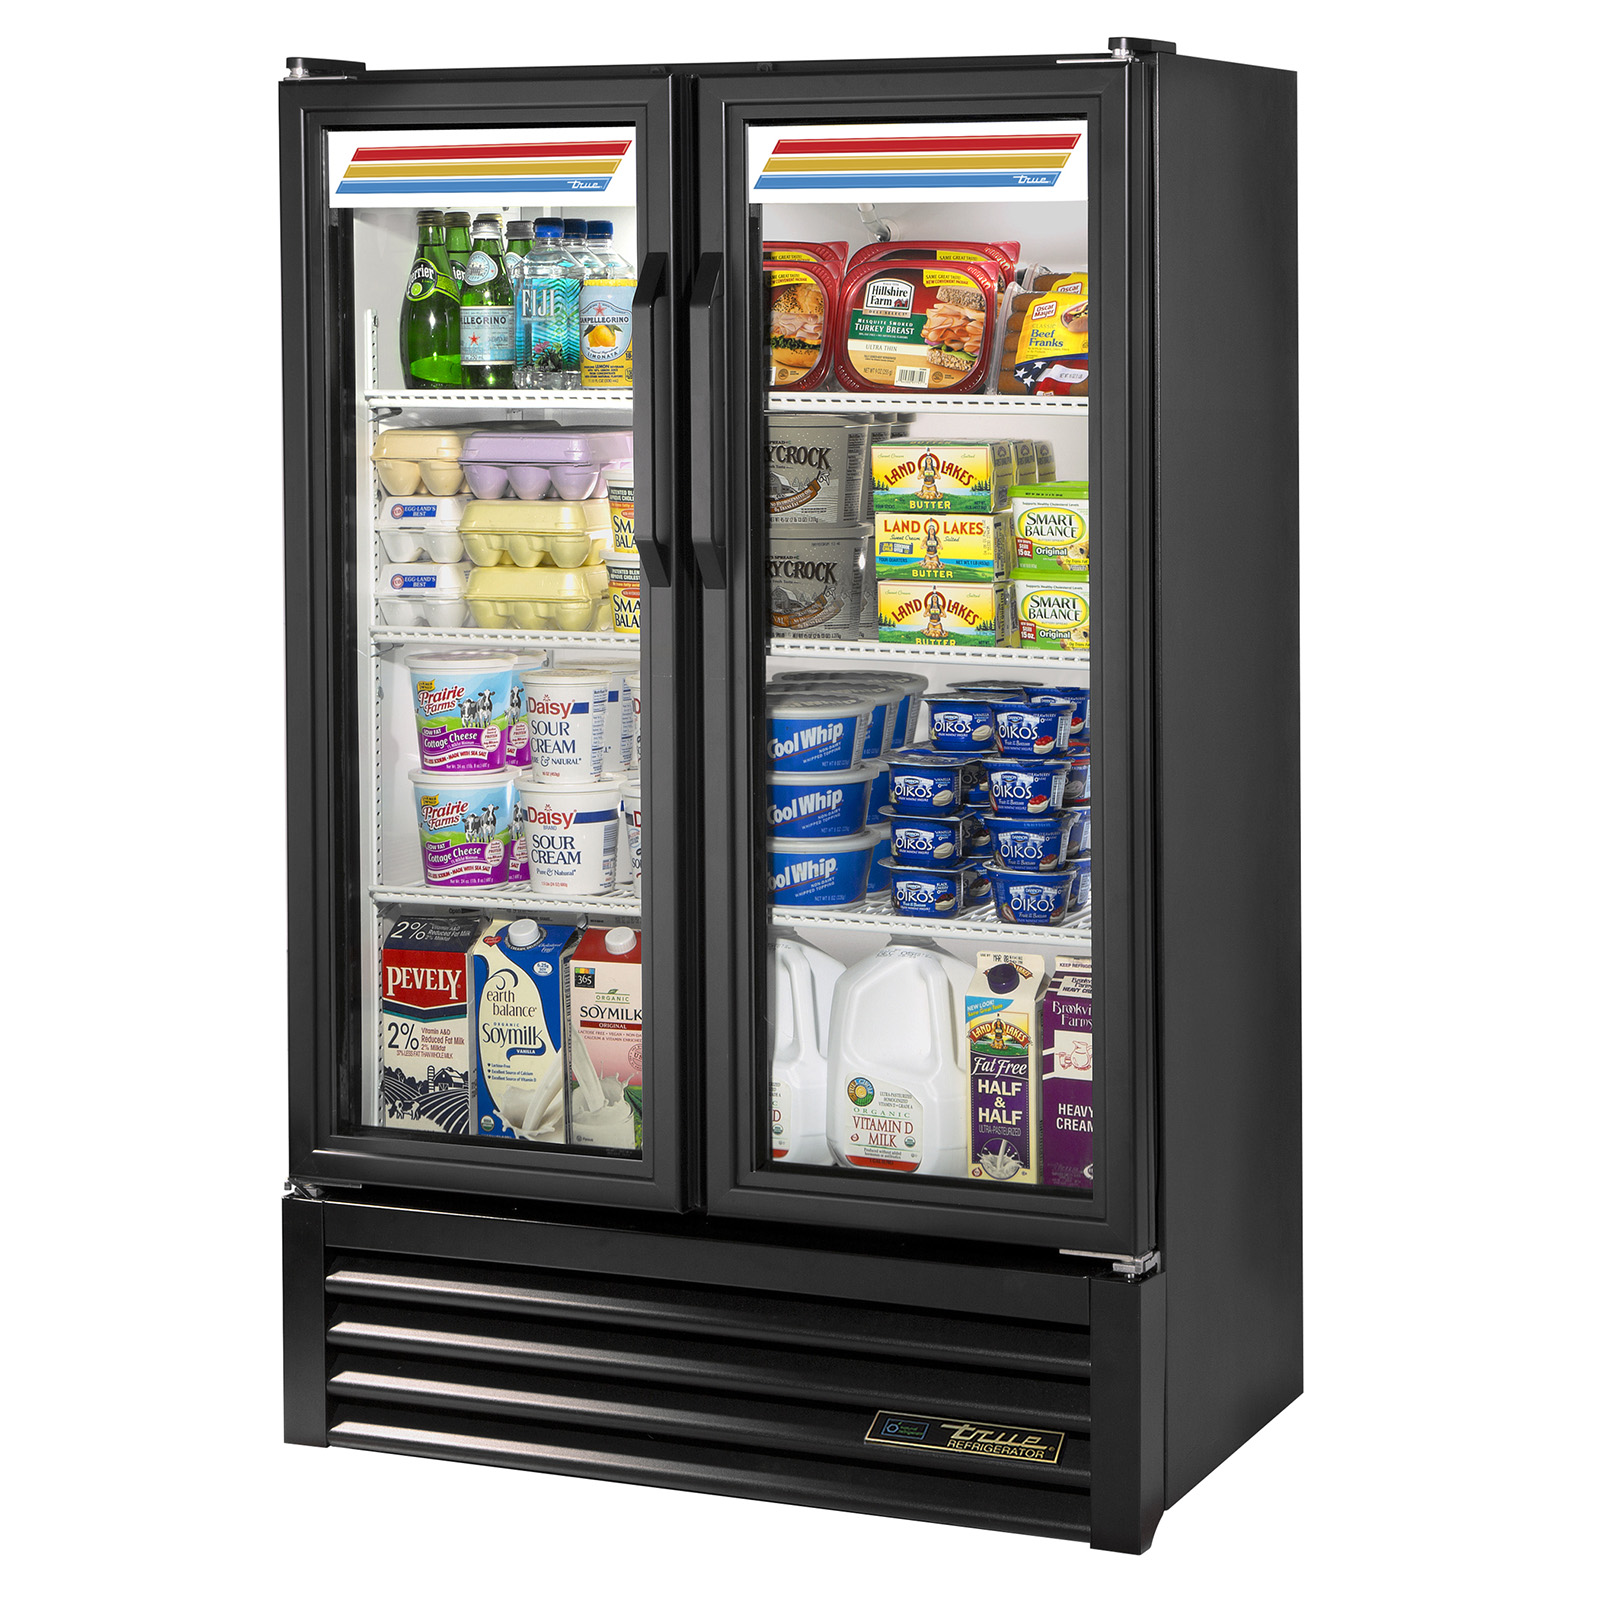 GDM-36SL-HC-LD True - Slim Line Refrigerated Merchandiser two-section